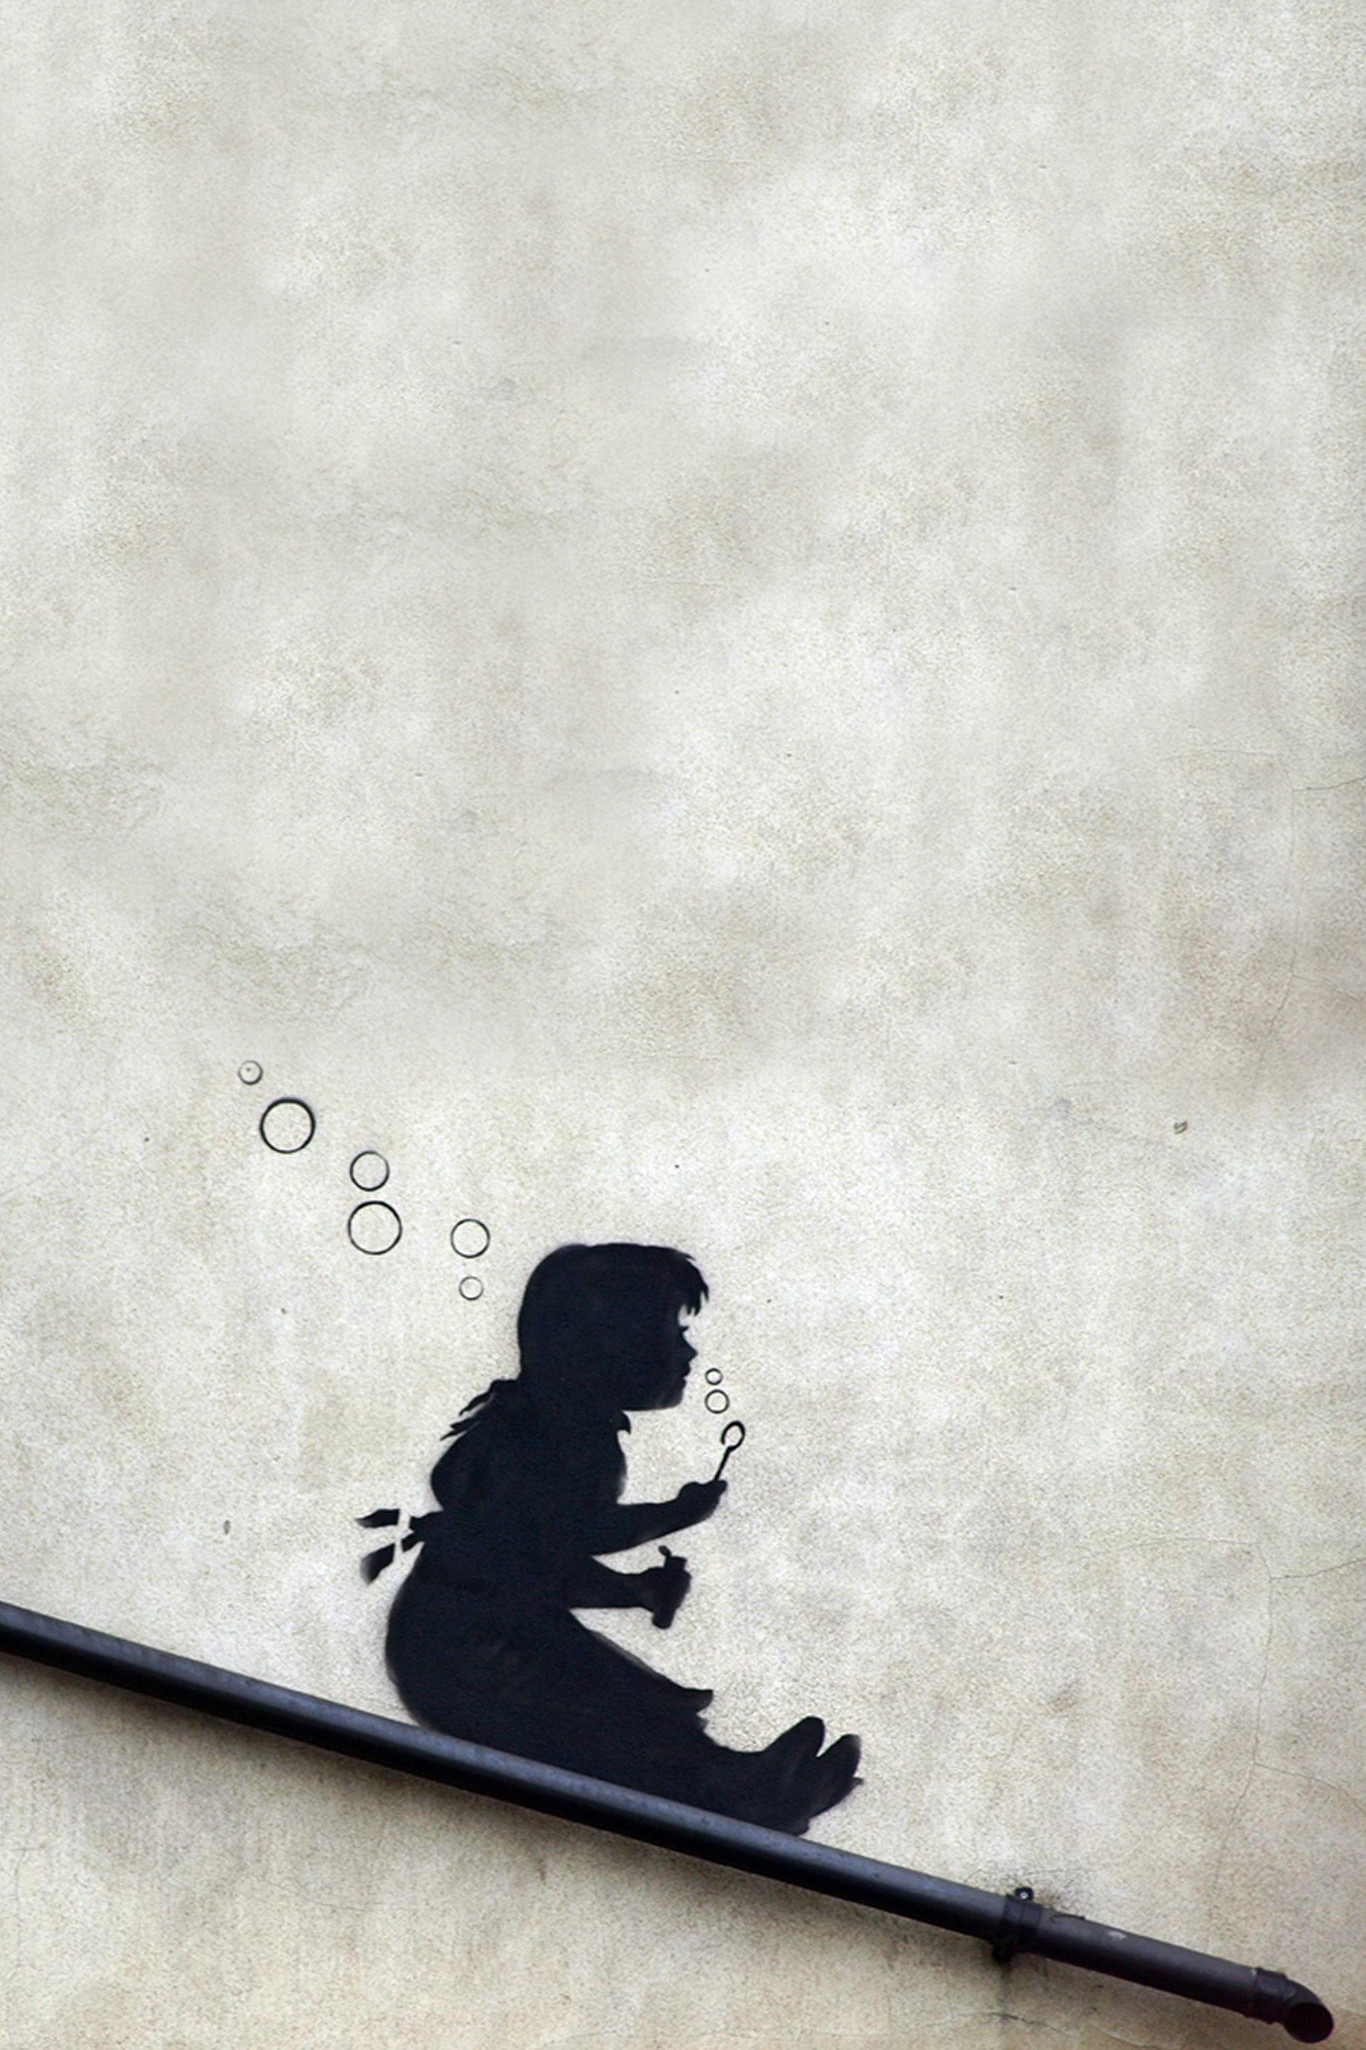 Banksy Girl Slide Bubbles Android Wallpaper. Download Your Screen Size  (1024 x 1024) – Recommended Download Original